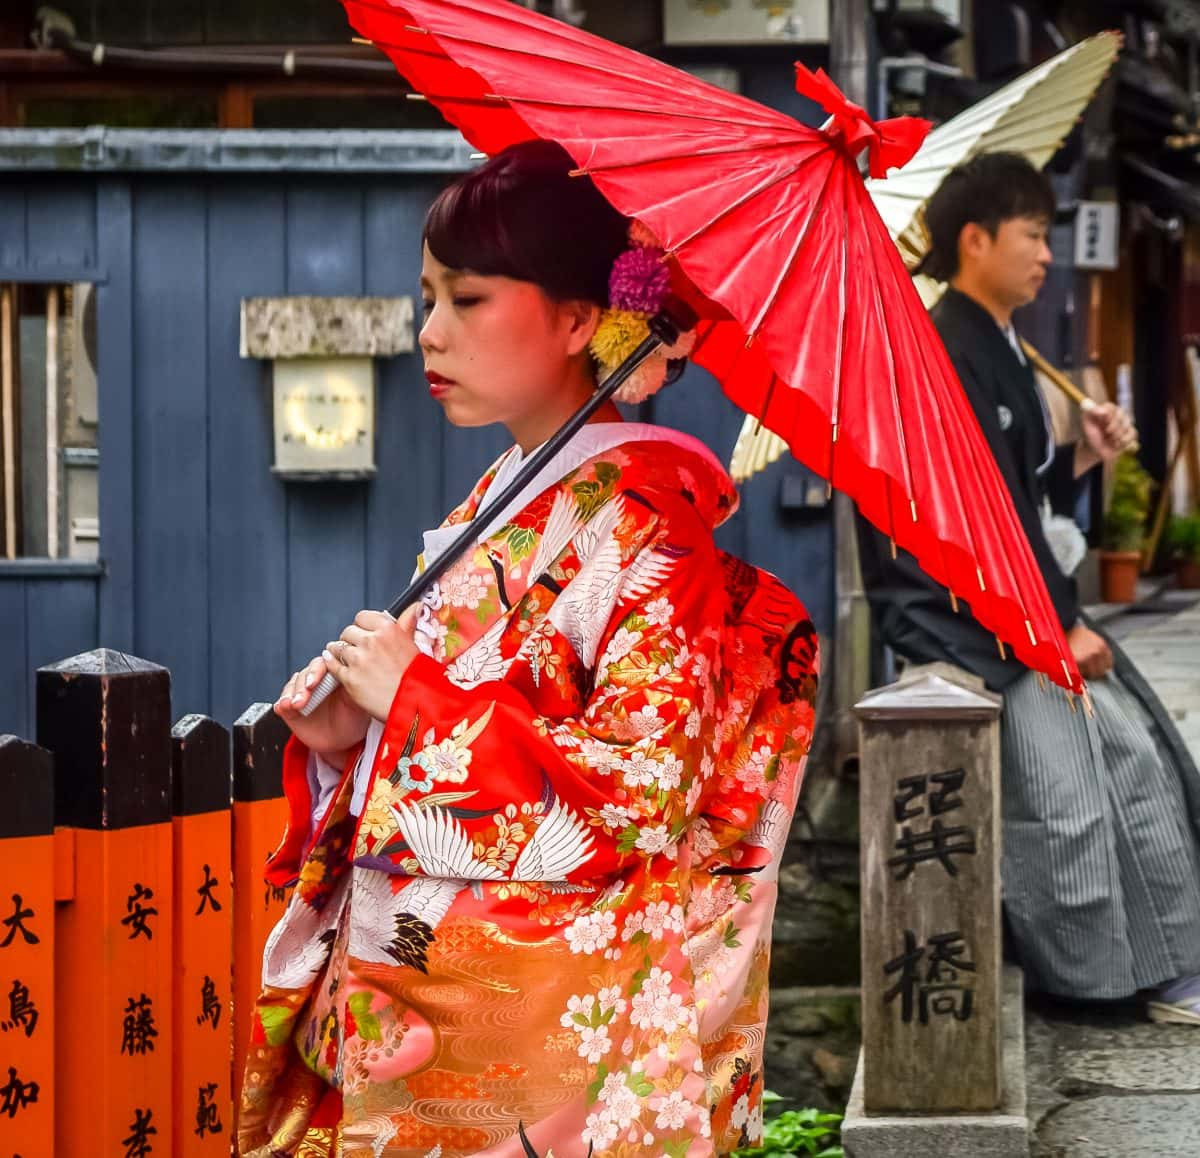 PhotoPOSTcard: Colorful Portrait Session in Gion